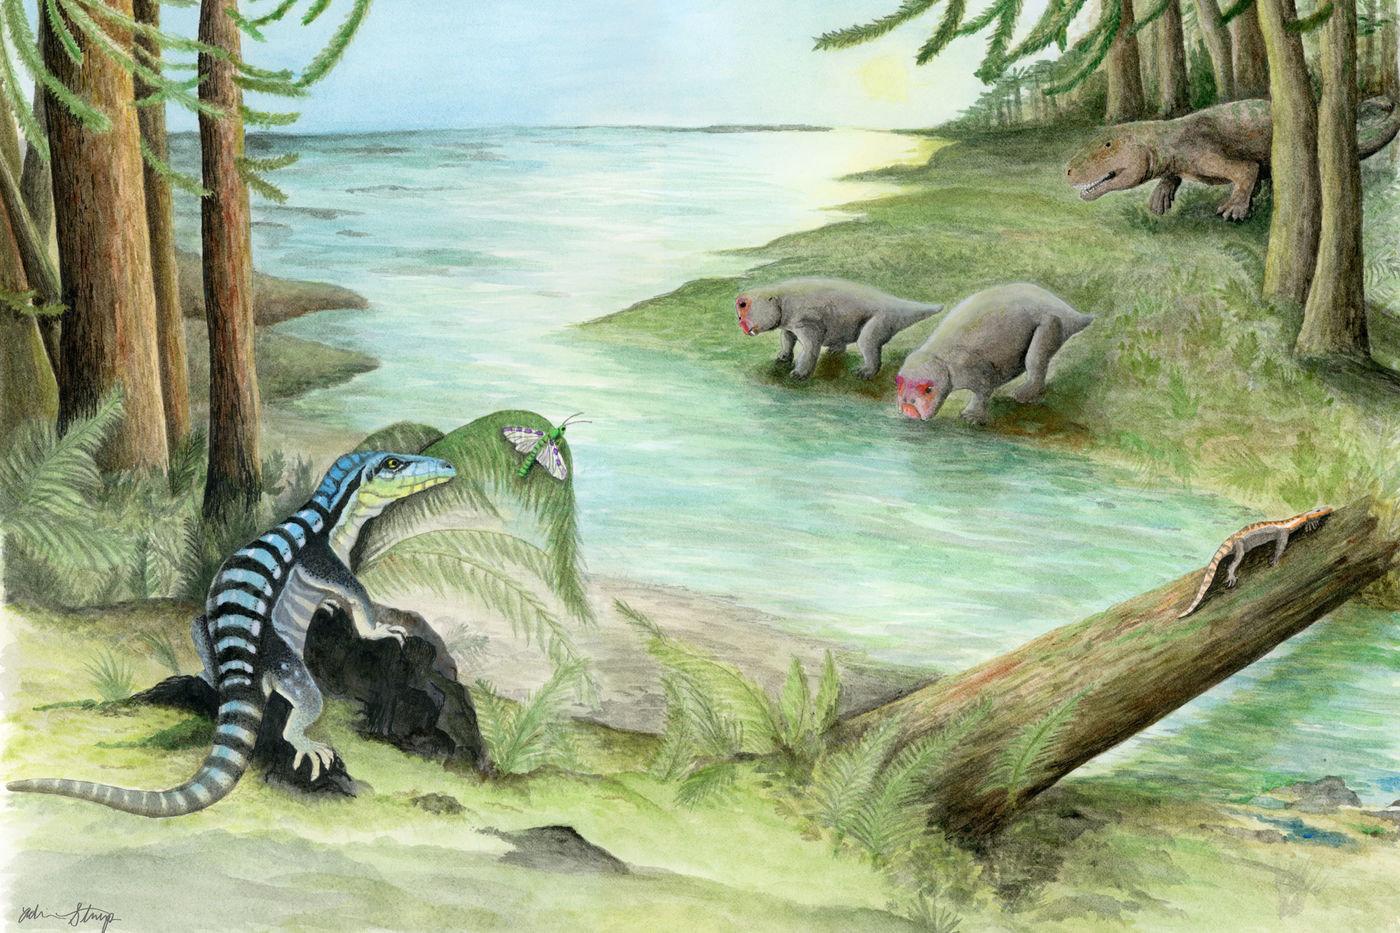 Illustration of a forest scene, with prehistoric animals on either side of a creek. In the foreground, a black and blue striped lizard-like animal perches on a rock as it appears to hunt a winged insect. A smaller lizard crosses a log over the creek. On the other side, two flat-faced, pig-sized animals approach the water's edge, and a dinosaur creeps in the background.